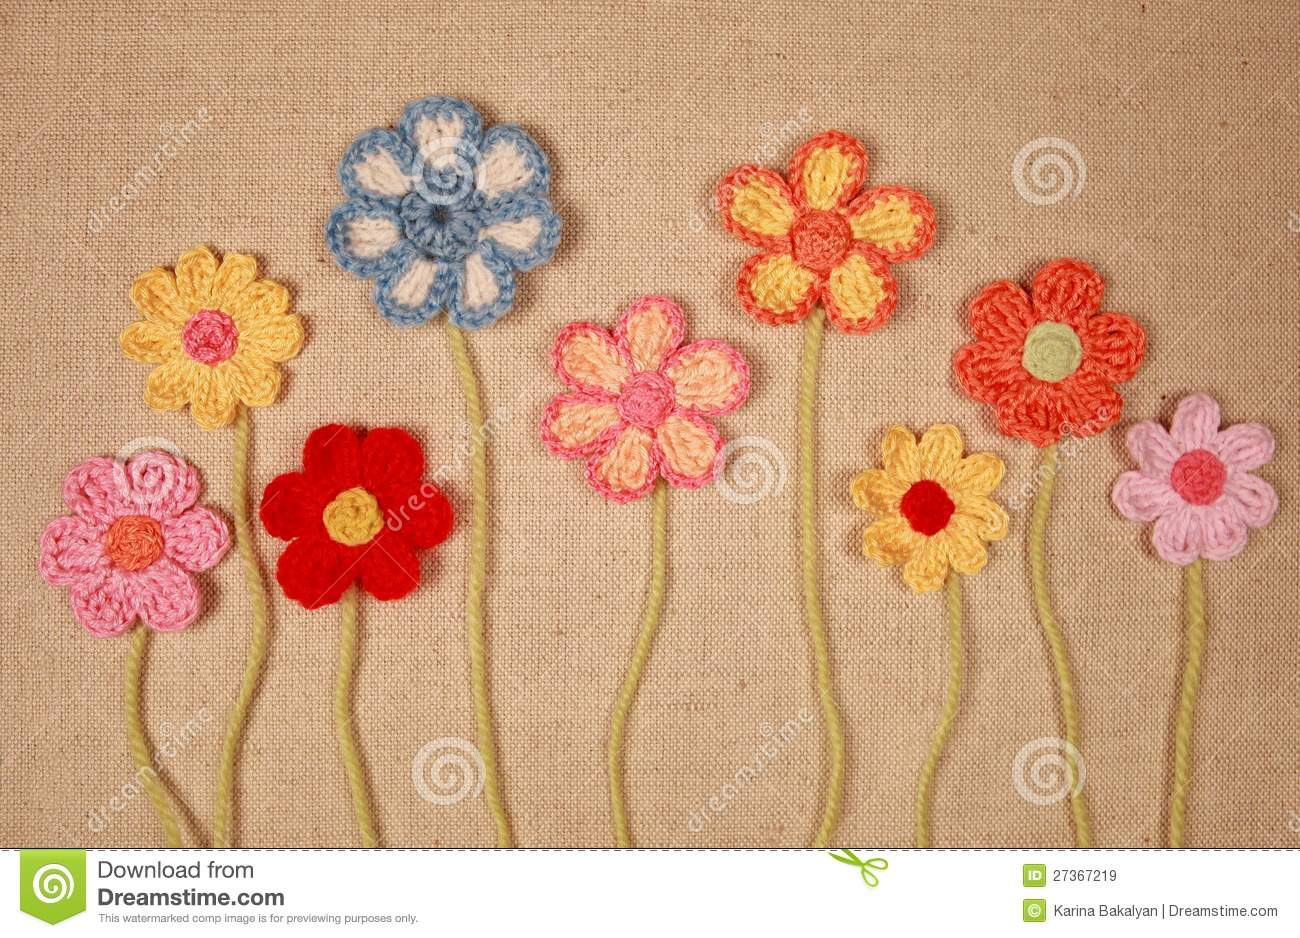 Knitted flowers stock image. Image of nobody, object - 27367219